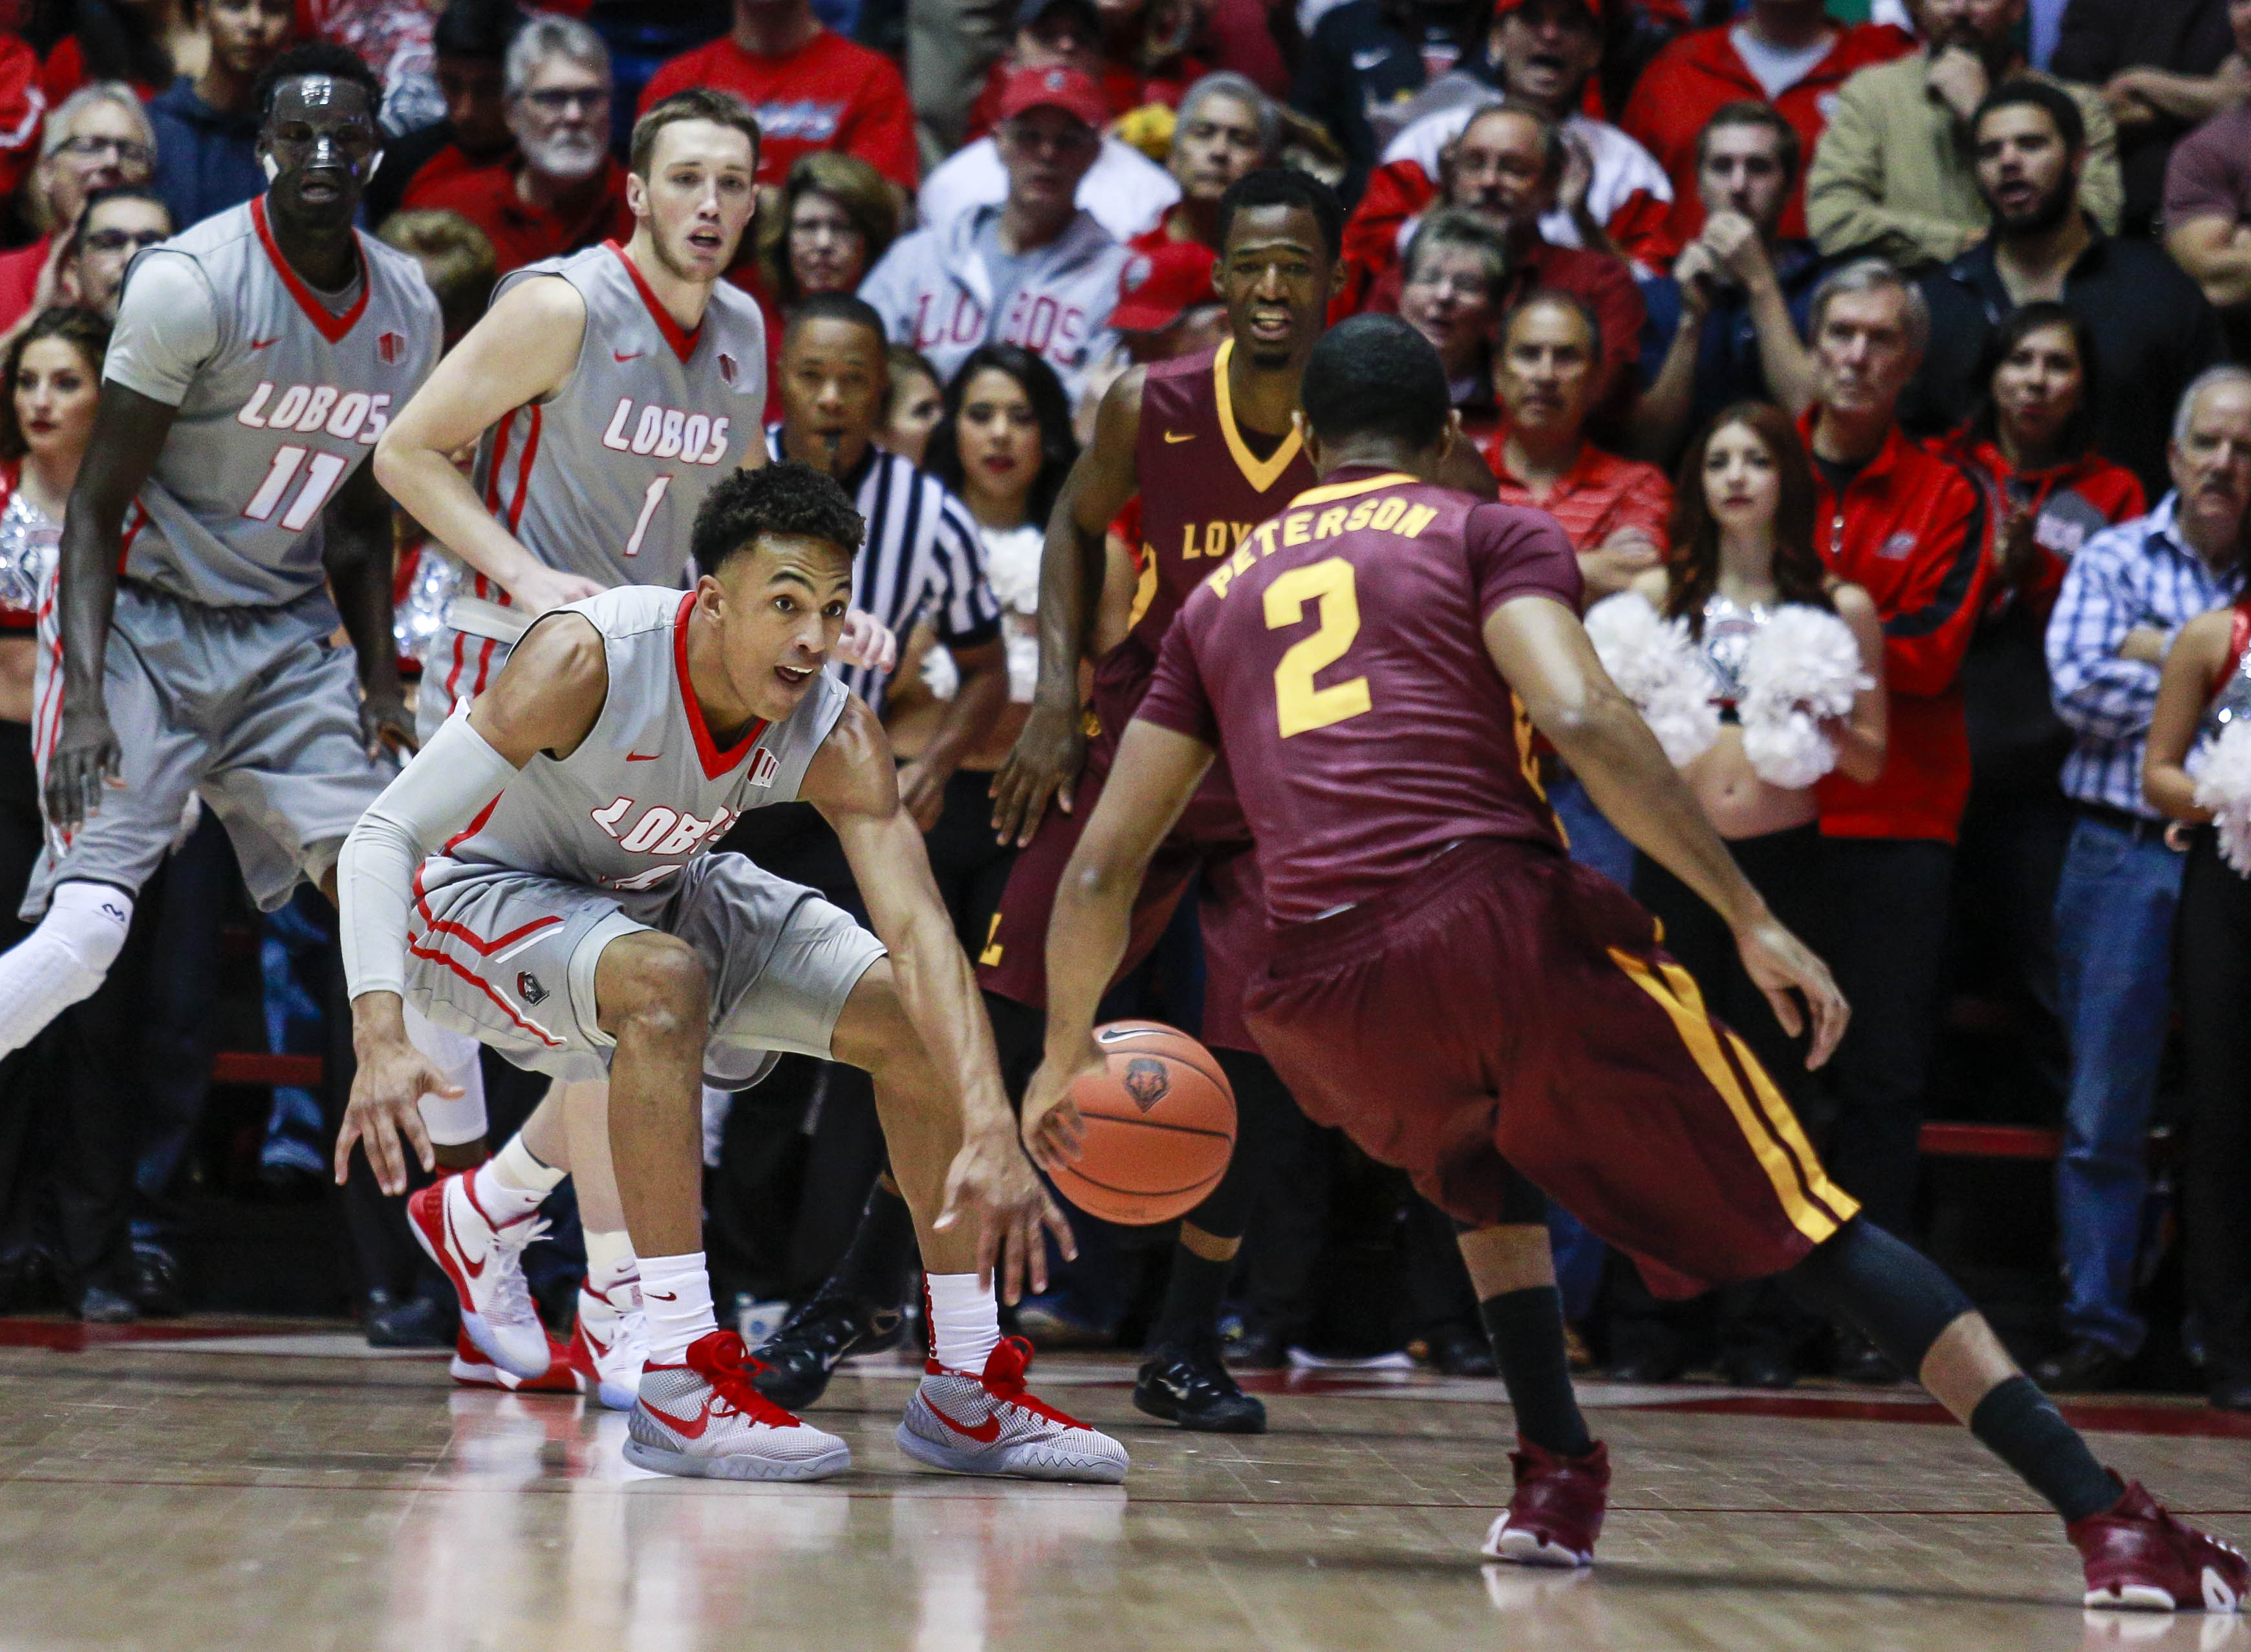 New Mexico's Elijah Brown (4) Cullen Neal (1) and Obij Aget (11) guard Loyola Chicago's Earl Peterson (2) during the first half of an NCAA college basketball game, Wednesday, Nov. 18, 2015, in Albuquerque, N.M. (AP Photo/Juan Labreche)